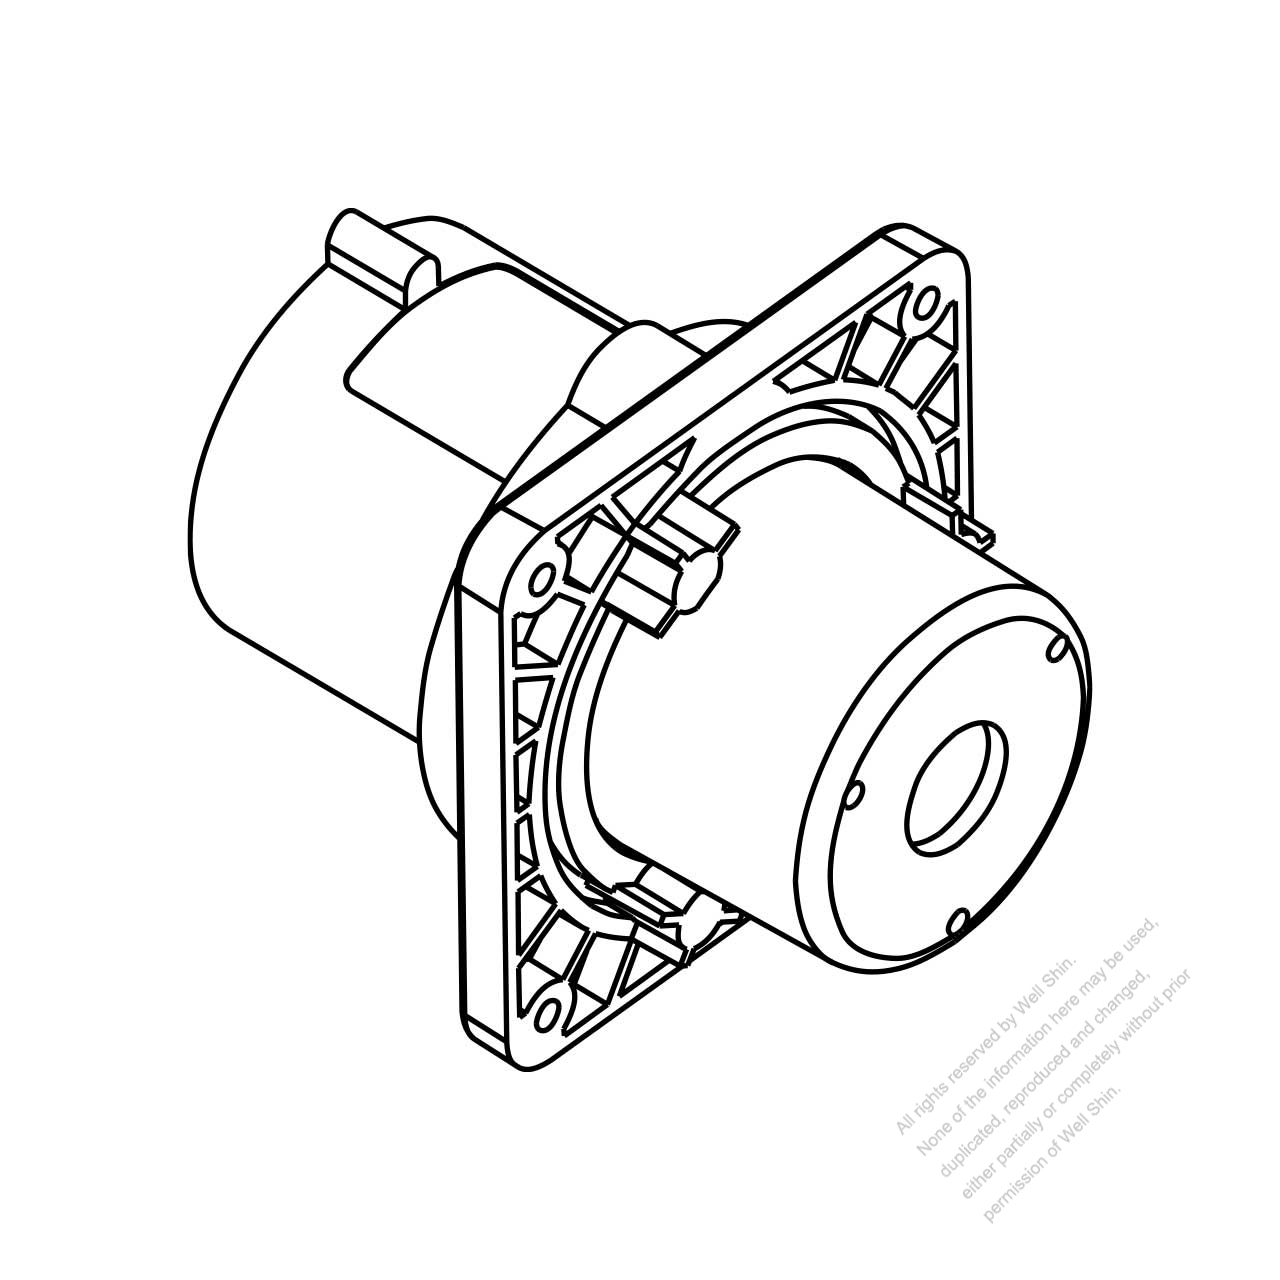 IEC 309 Interlock inlet, 2 P 3 Wire, IP 44 splash proof